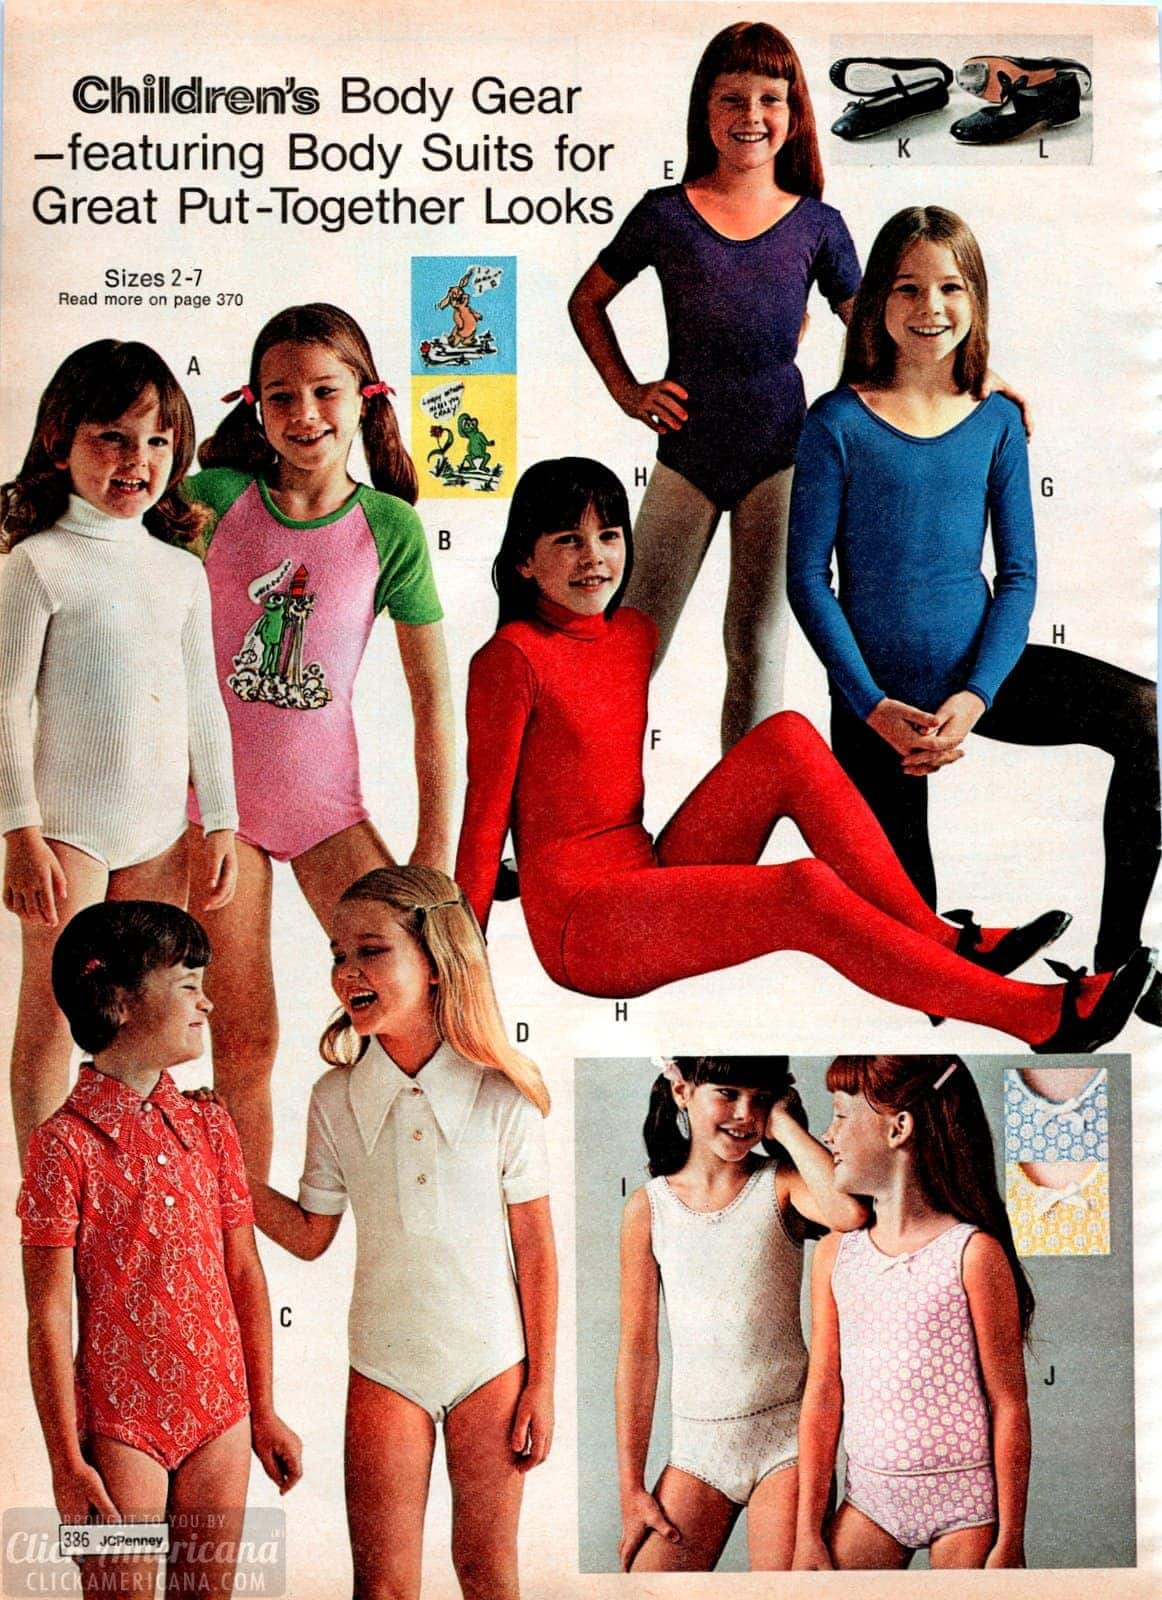 70s bodysuits and leotards for girls ages 2 to 7